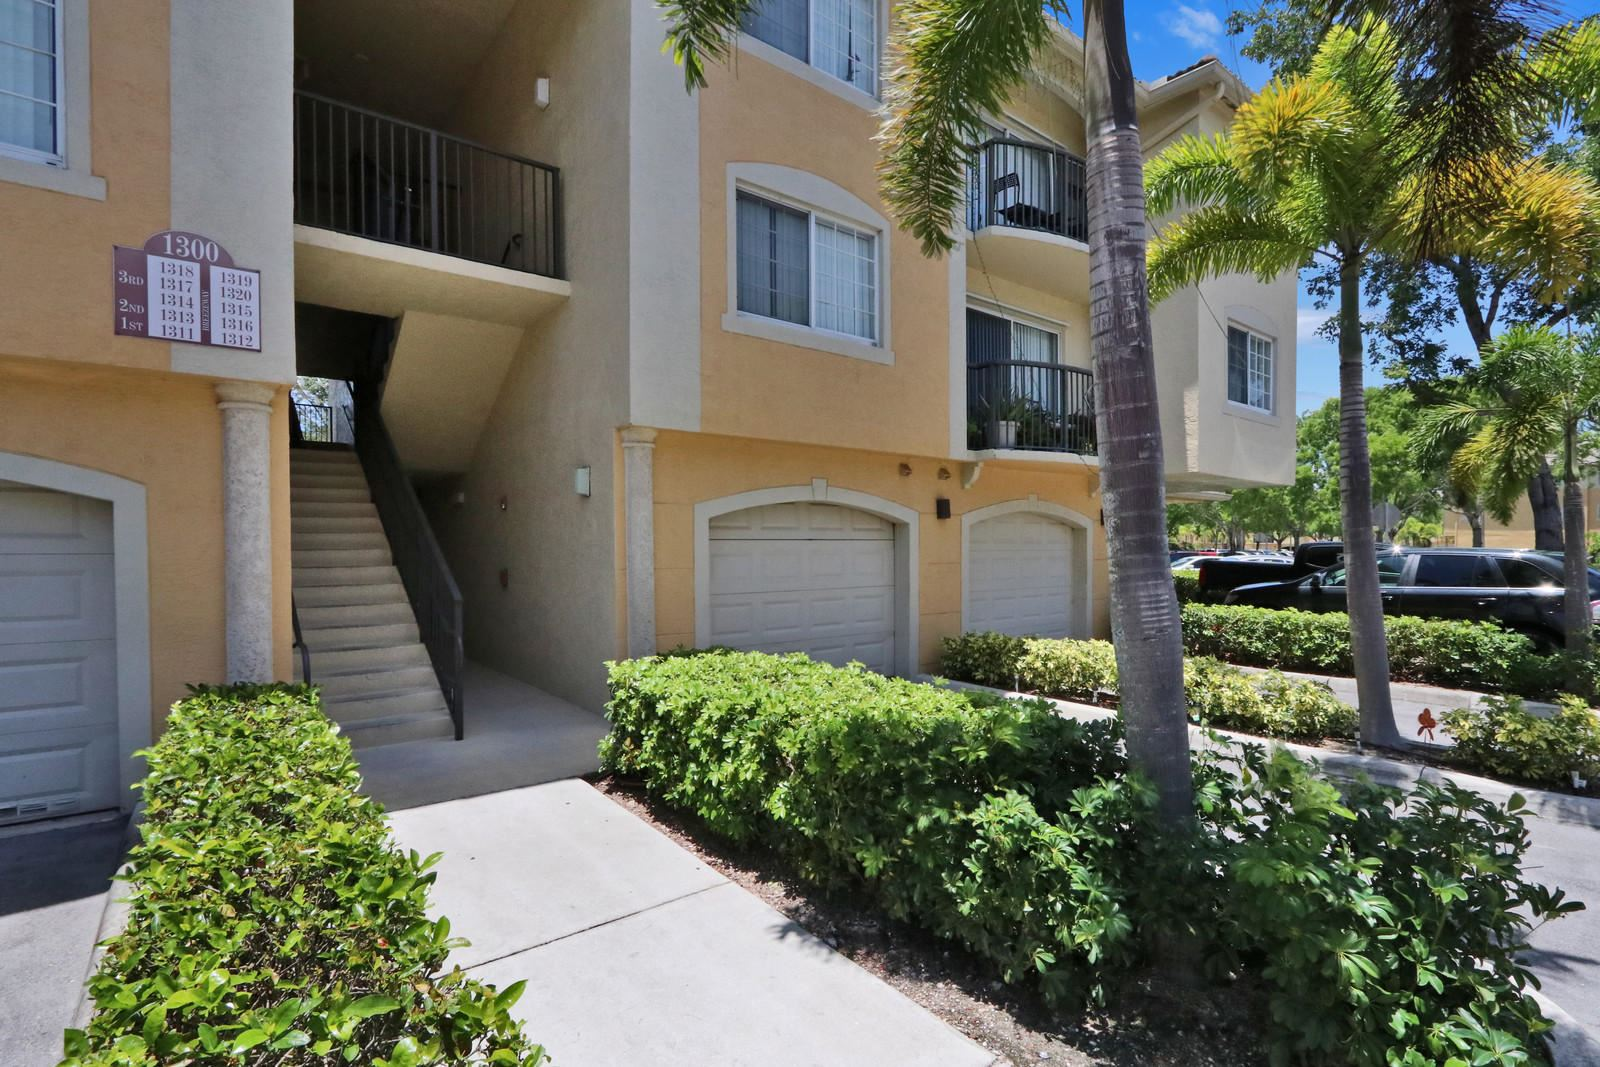 Photo for 1300 Crestwood Court S #1315, Royal Palm Beach, FL 33411 (MLS # RX-10624814)